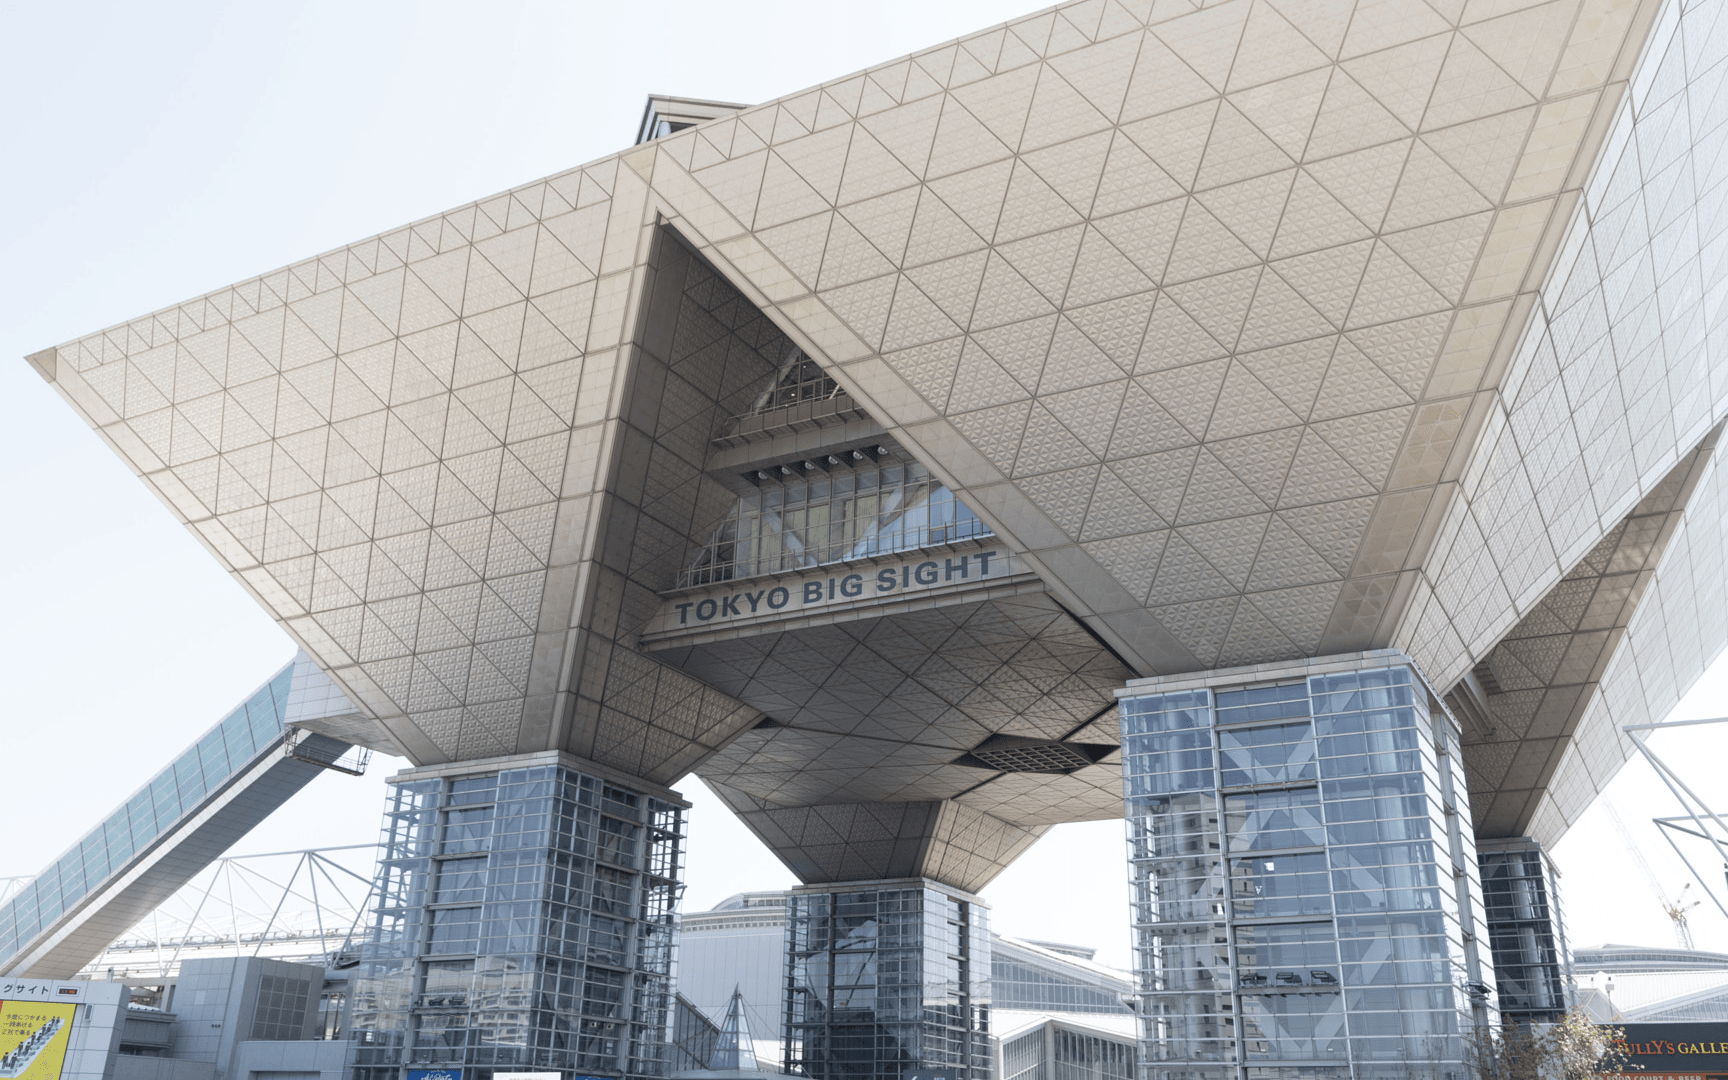 Https://gfi. Org/wp content/uploads/2021/01/hcj tokyo big sight cover